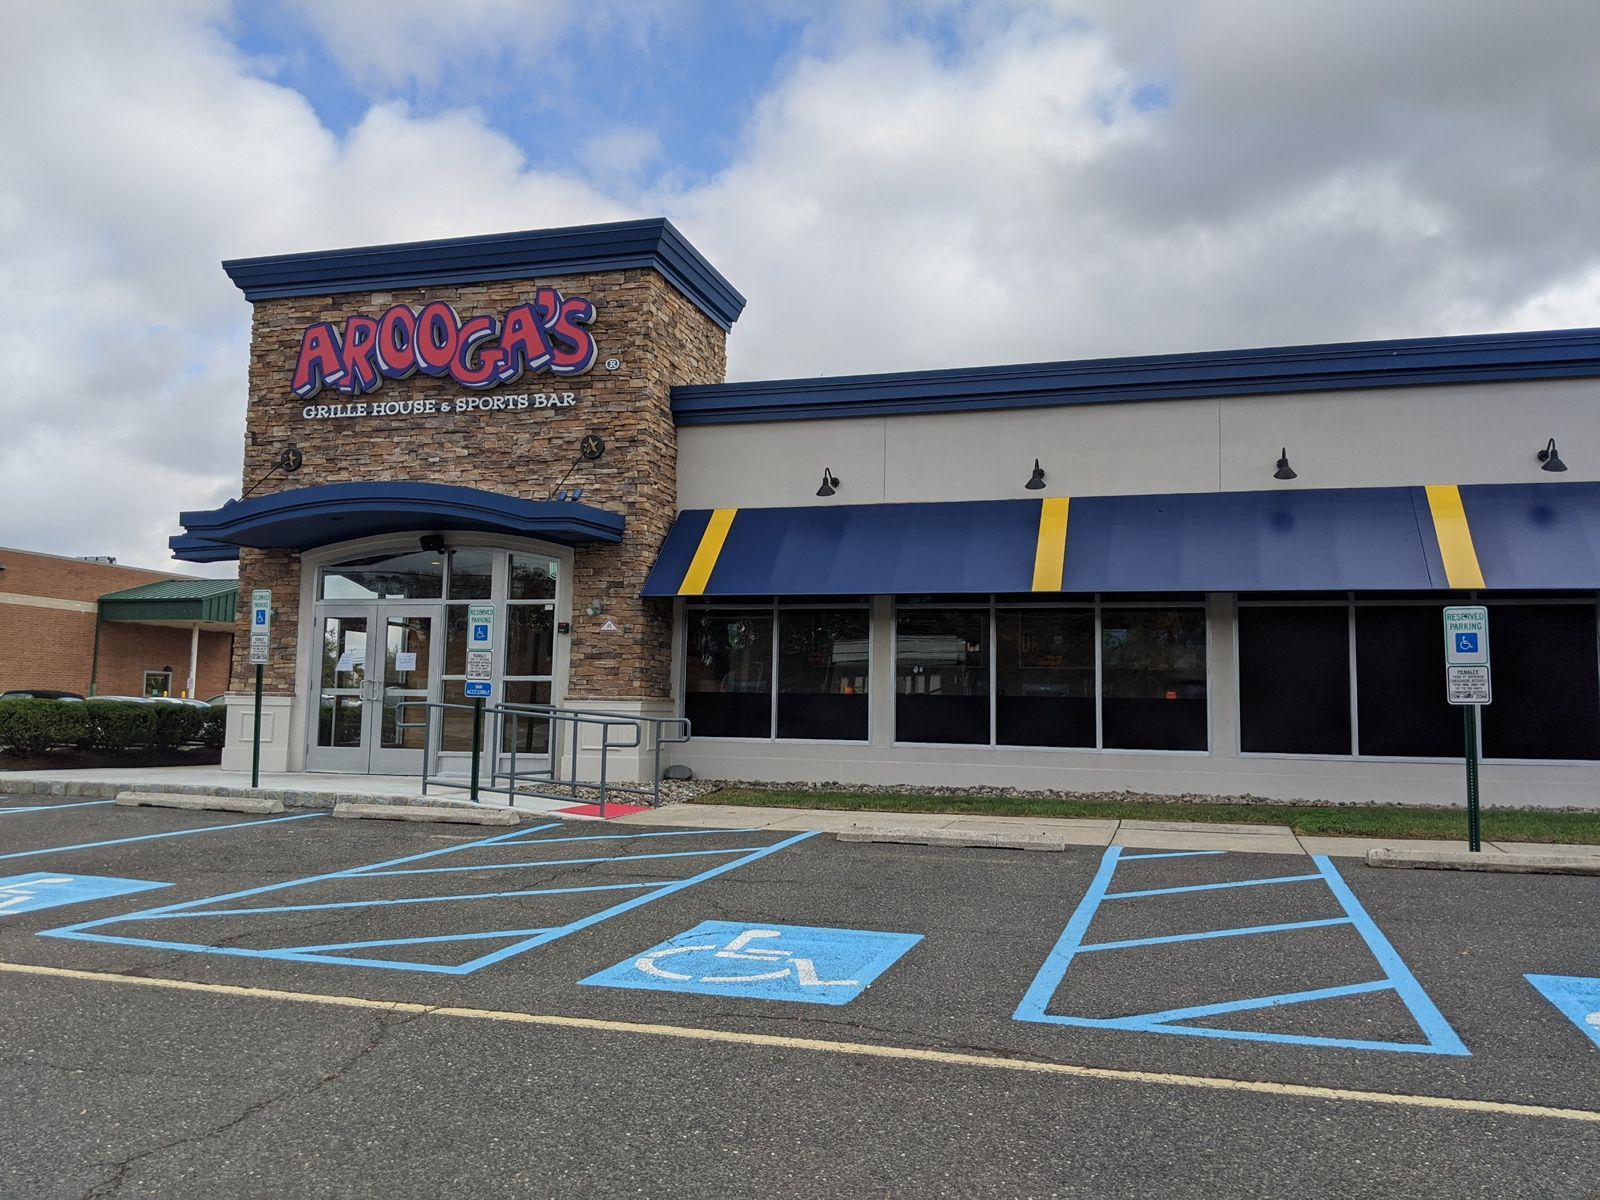 Arooga's Grille House & Sports Bar to Open Franchise Location in Howell, NJ on October 31st